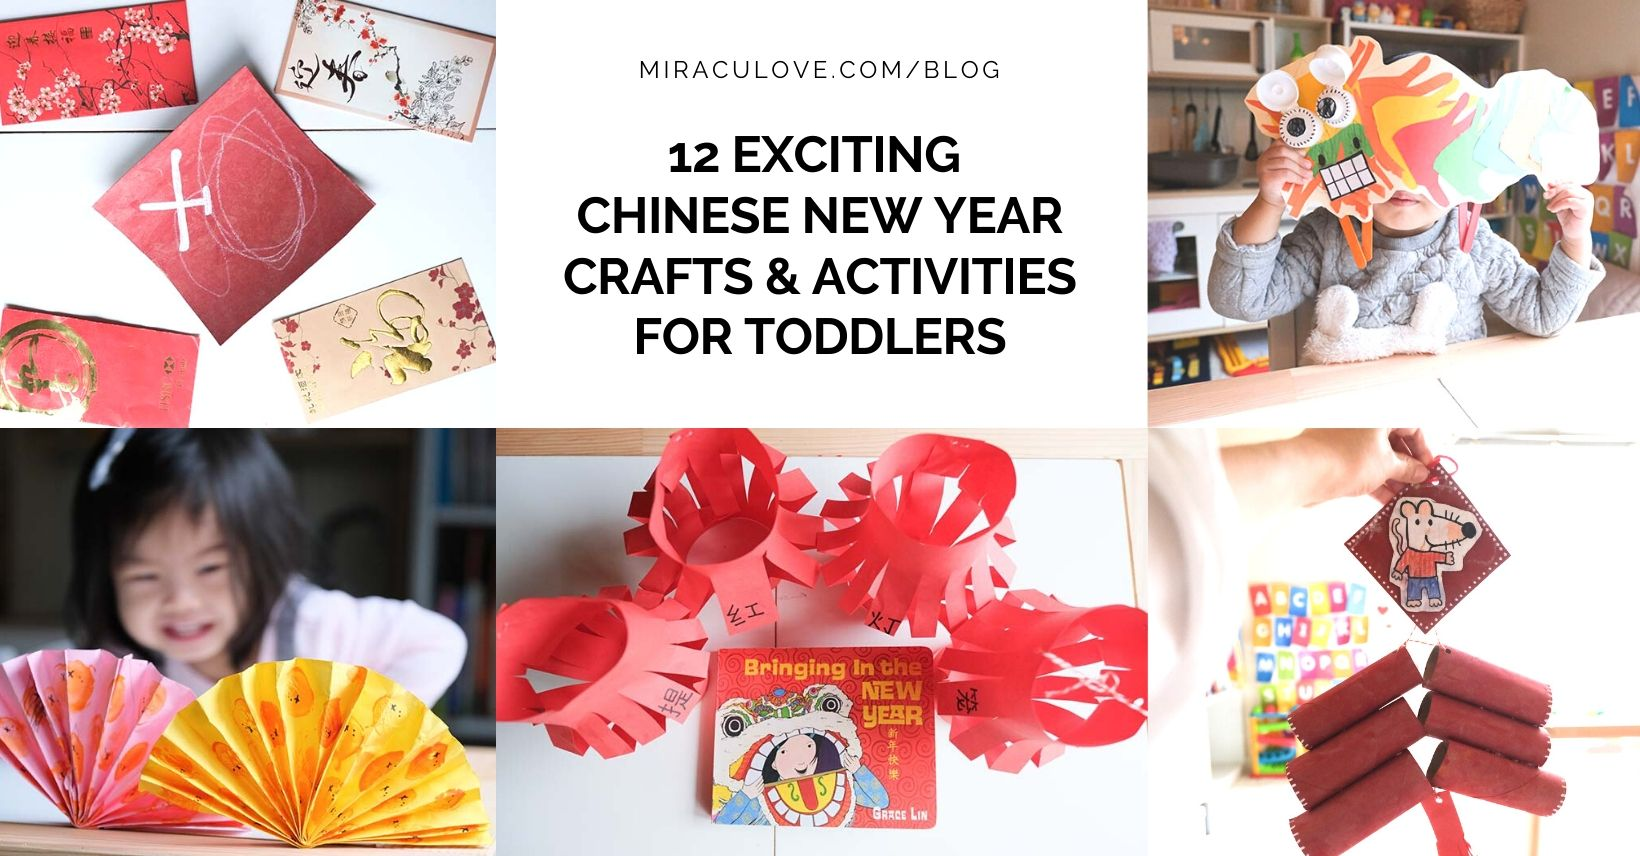 12 Exciting Chinese New Year Crafts and Activities for Toddlers